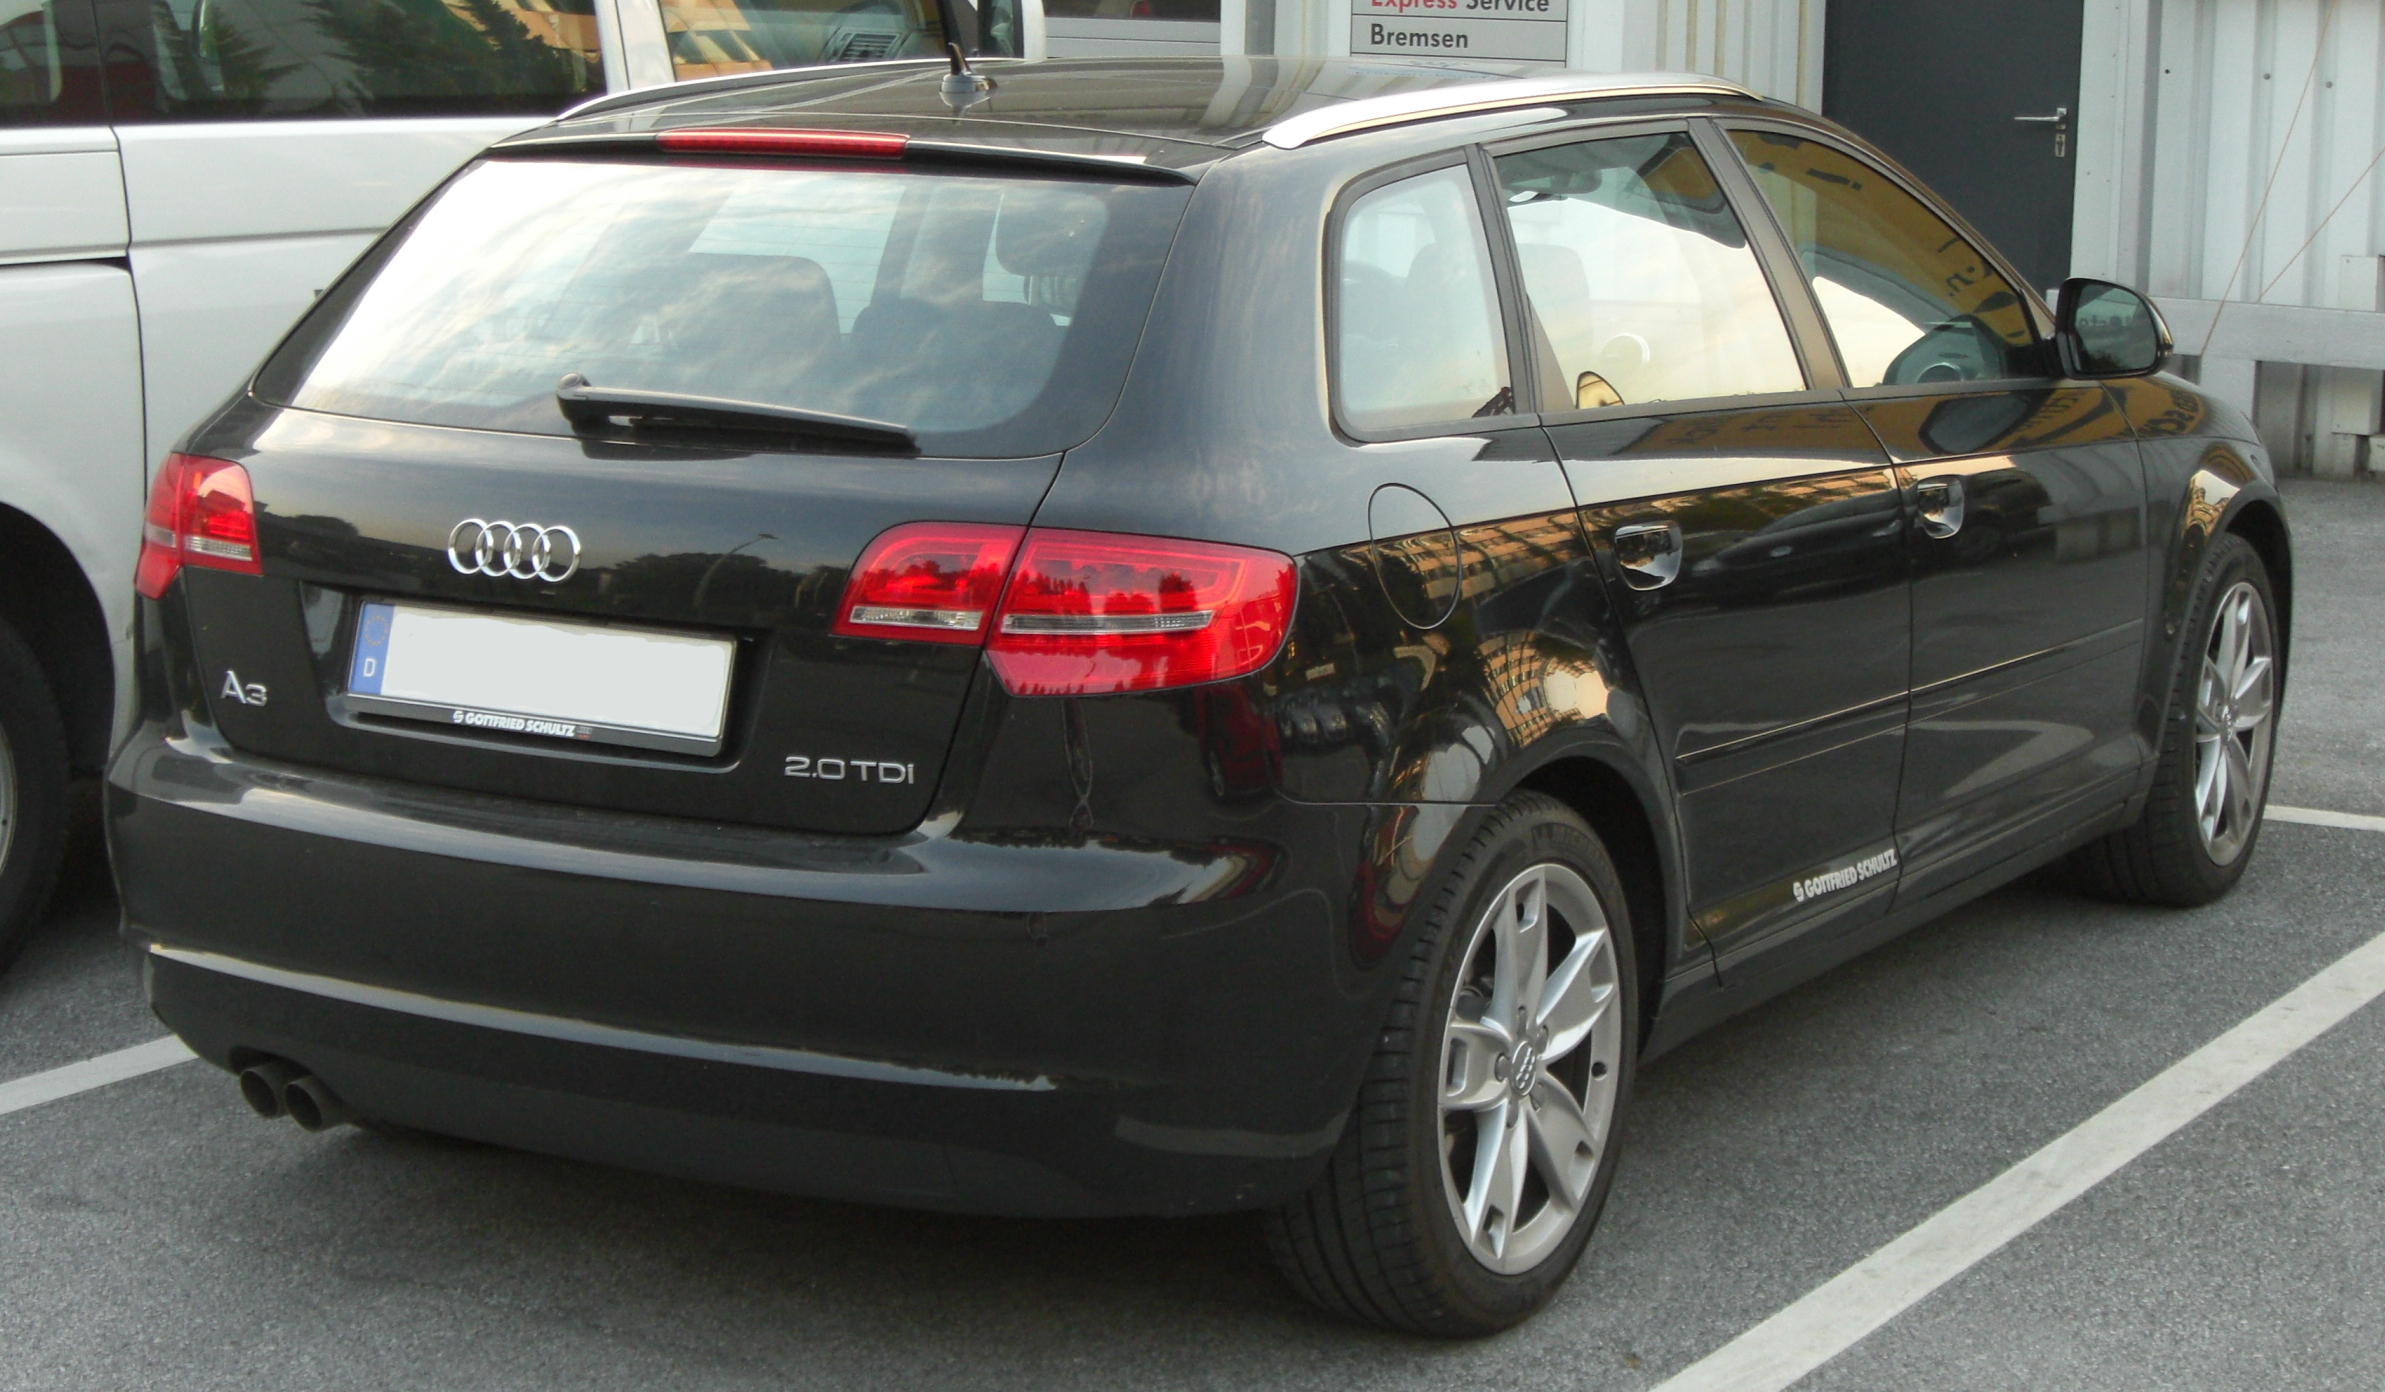 datoteka audi a3 sportback 2 0 tdi facelift rear jpg wikipedija. Black Bedroom Furniture Sets. Home Design Ideas